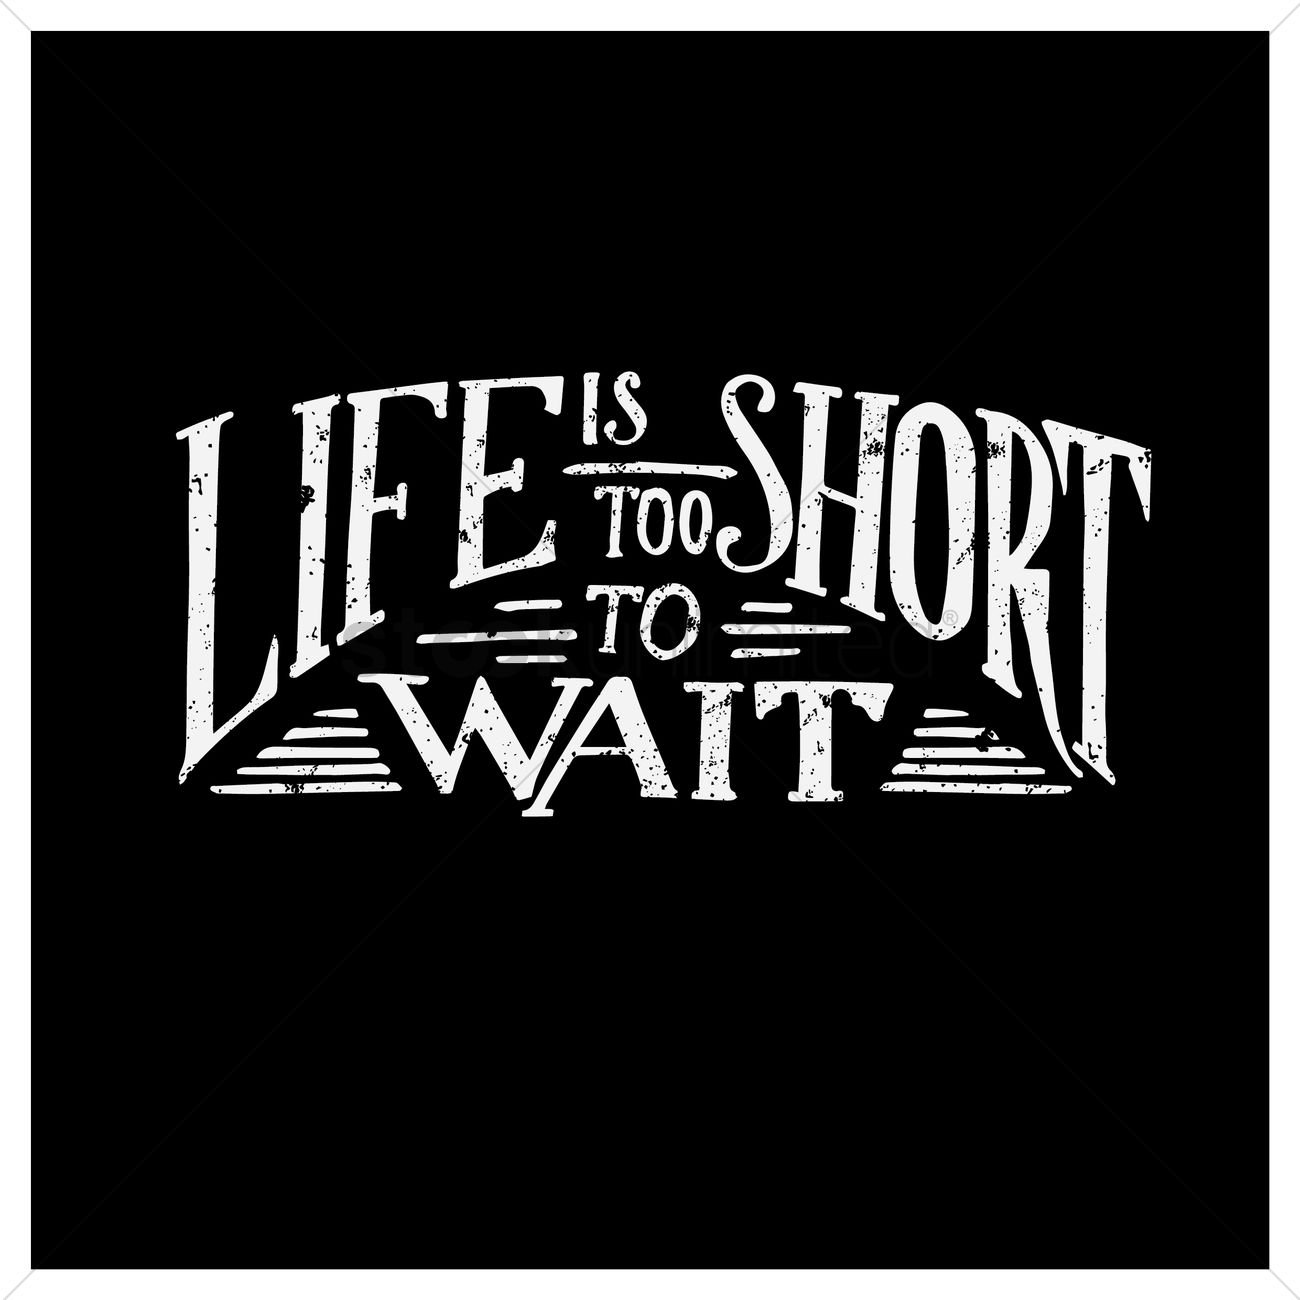 Life Is Too Short To Wait Quote Vector Image 1571041 Stockunlimited